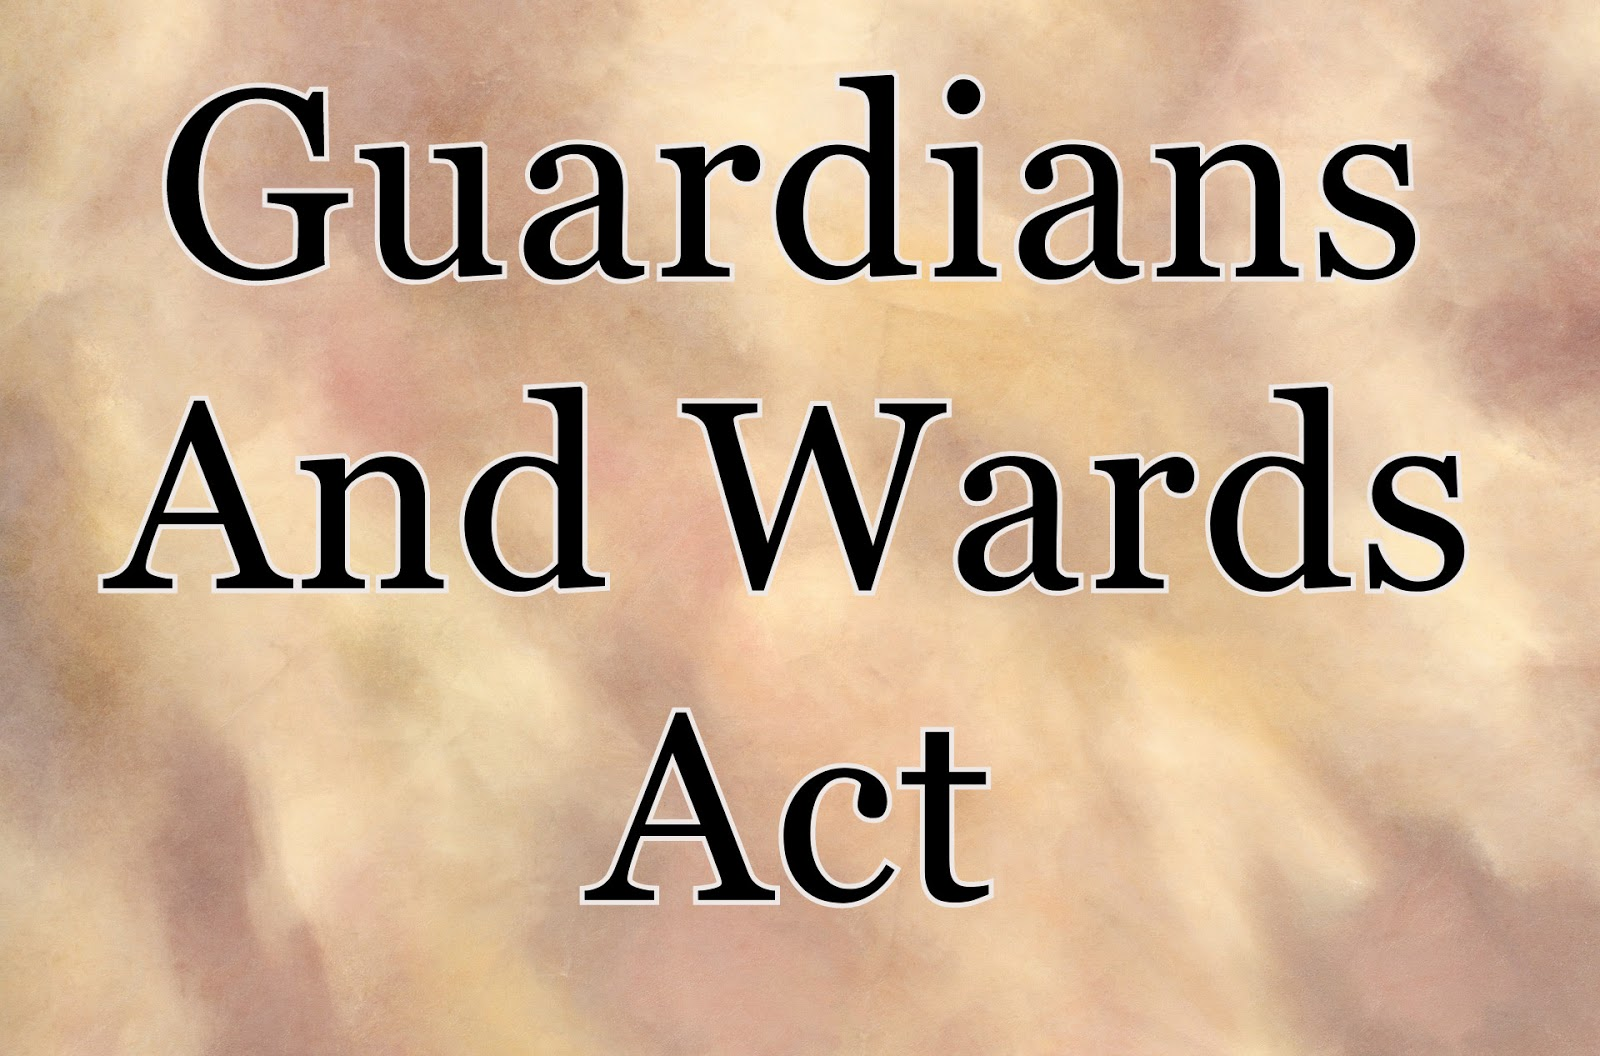 Guardians and Wards Act